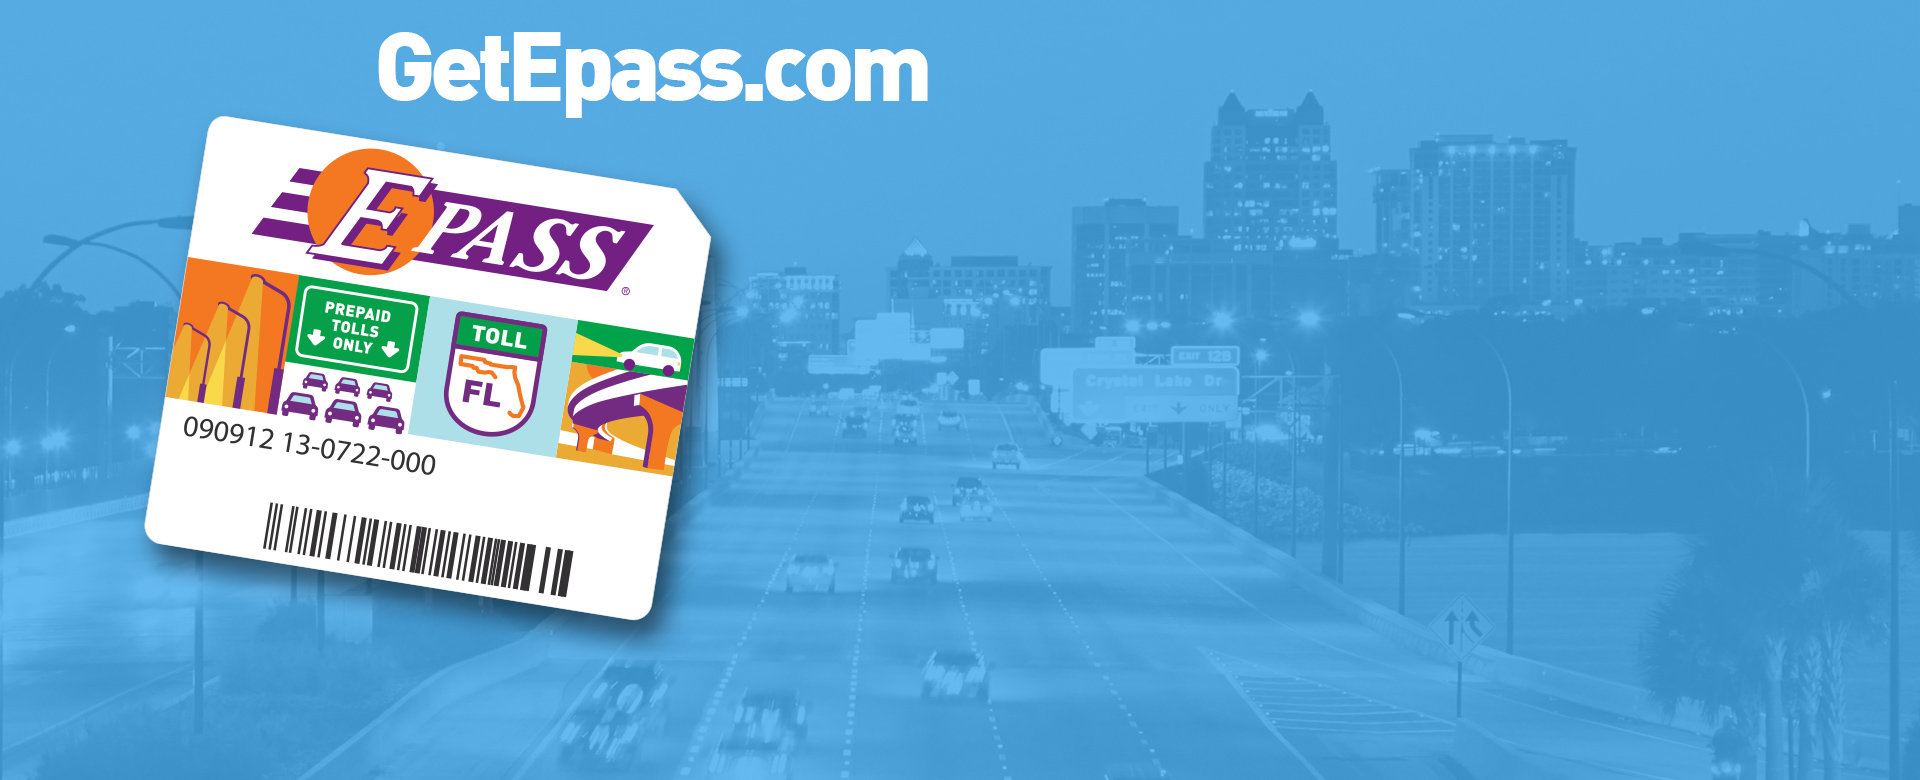 Toll Discounts Only with E-PASS